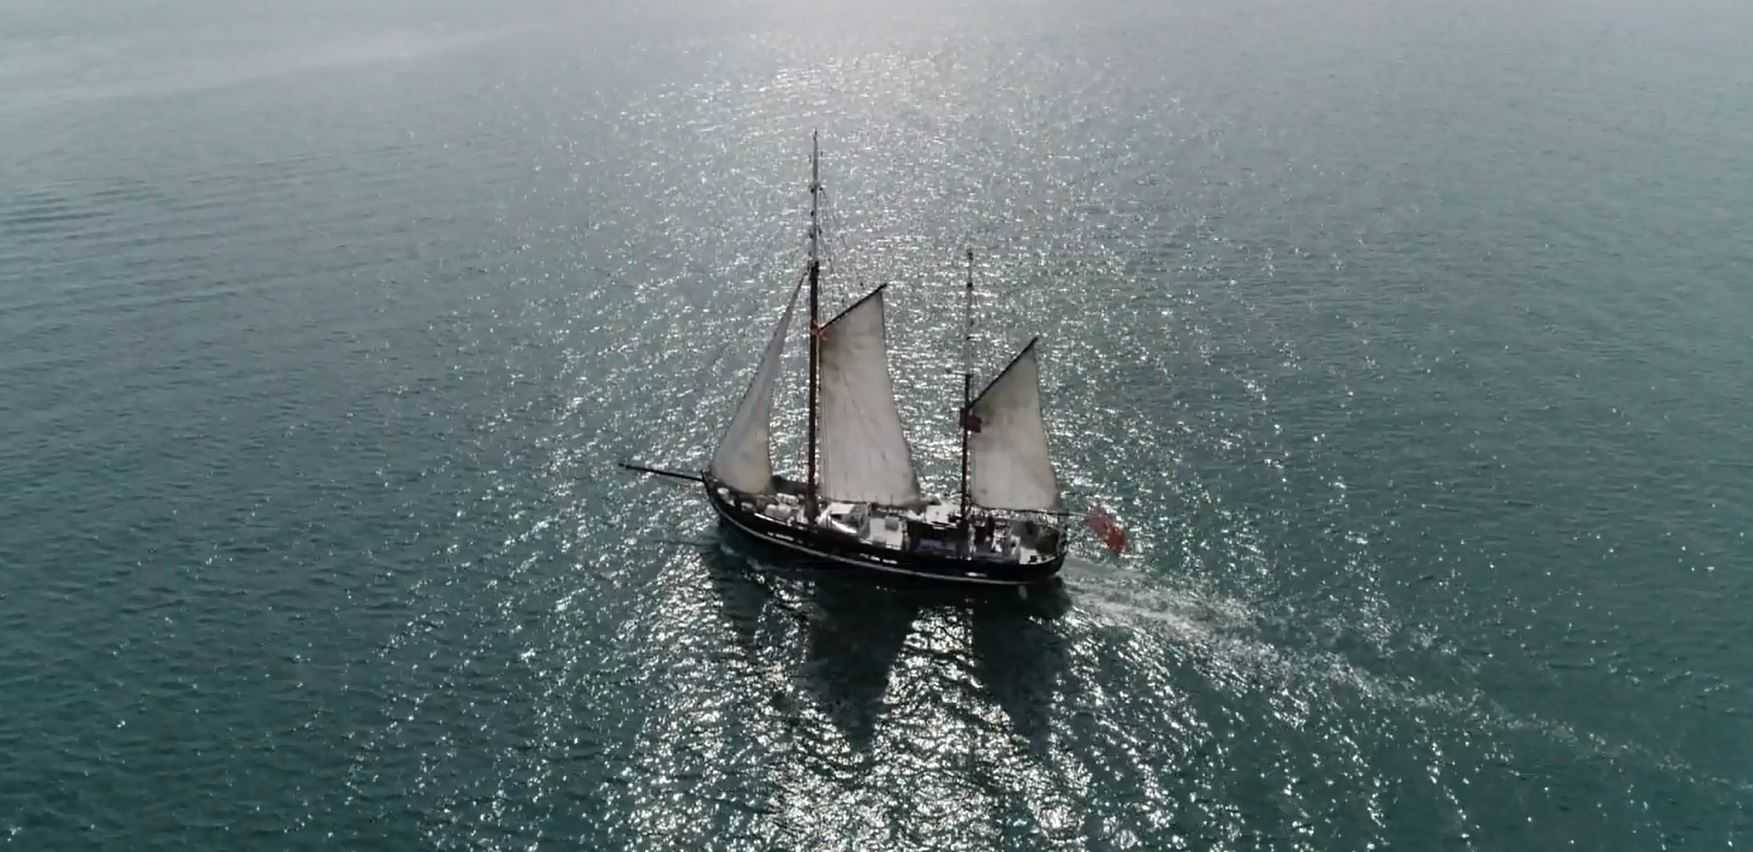 Moonfleet Sailing taken by Ryan Skelsey